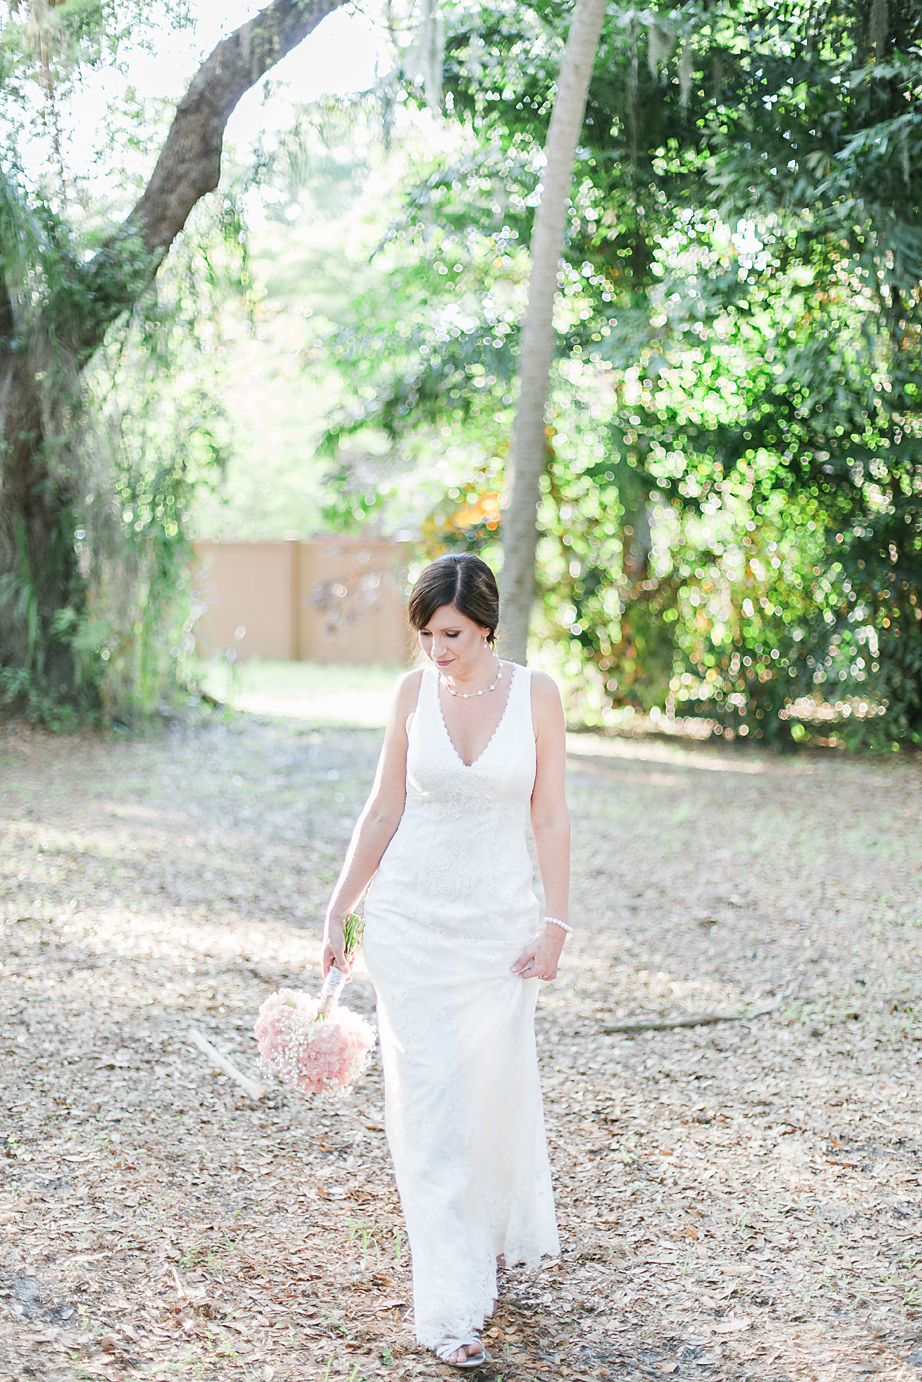 Jen + Matthew - Emily & Co. Photography - Sarasota Wedding Photography - Manatee River Garden Club Weddings